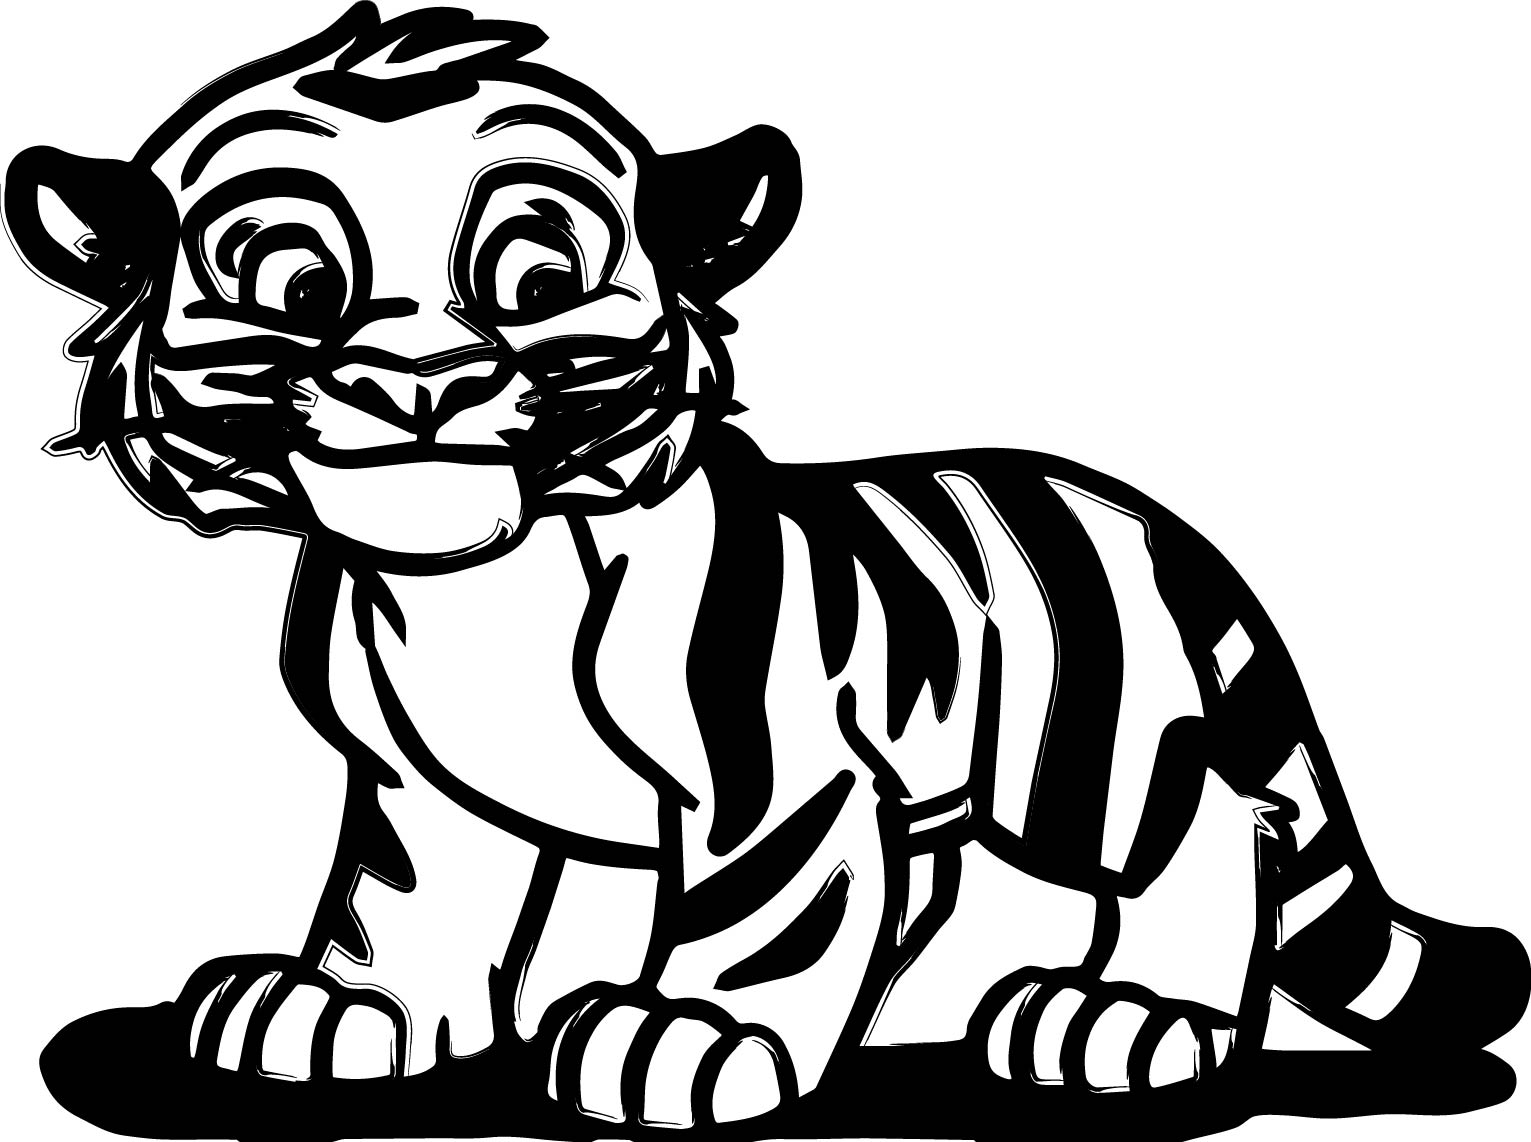 tiger images for colouring tiger coloring pages kidsuki colouring for tiger images